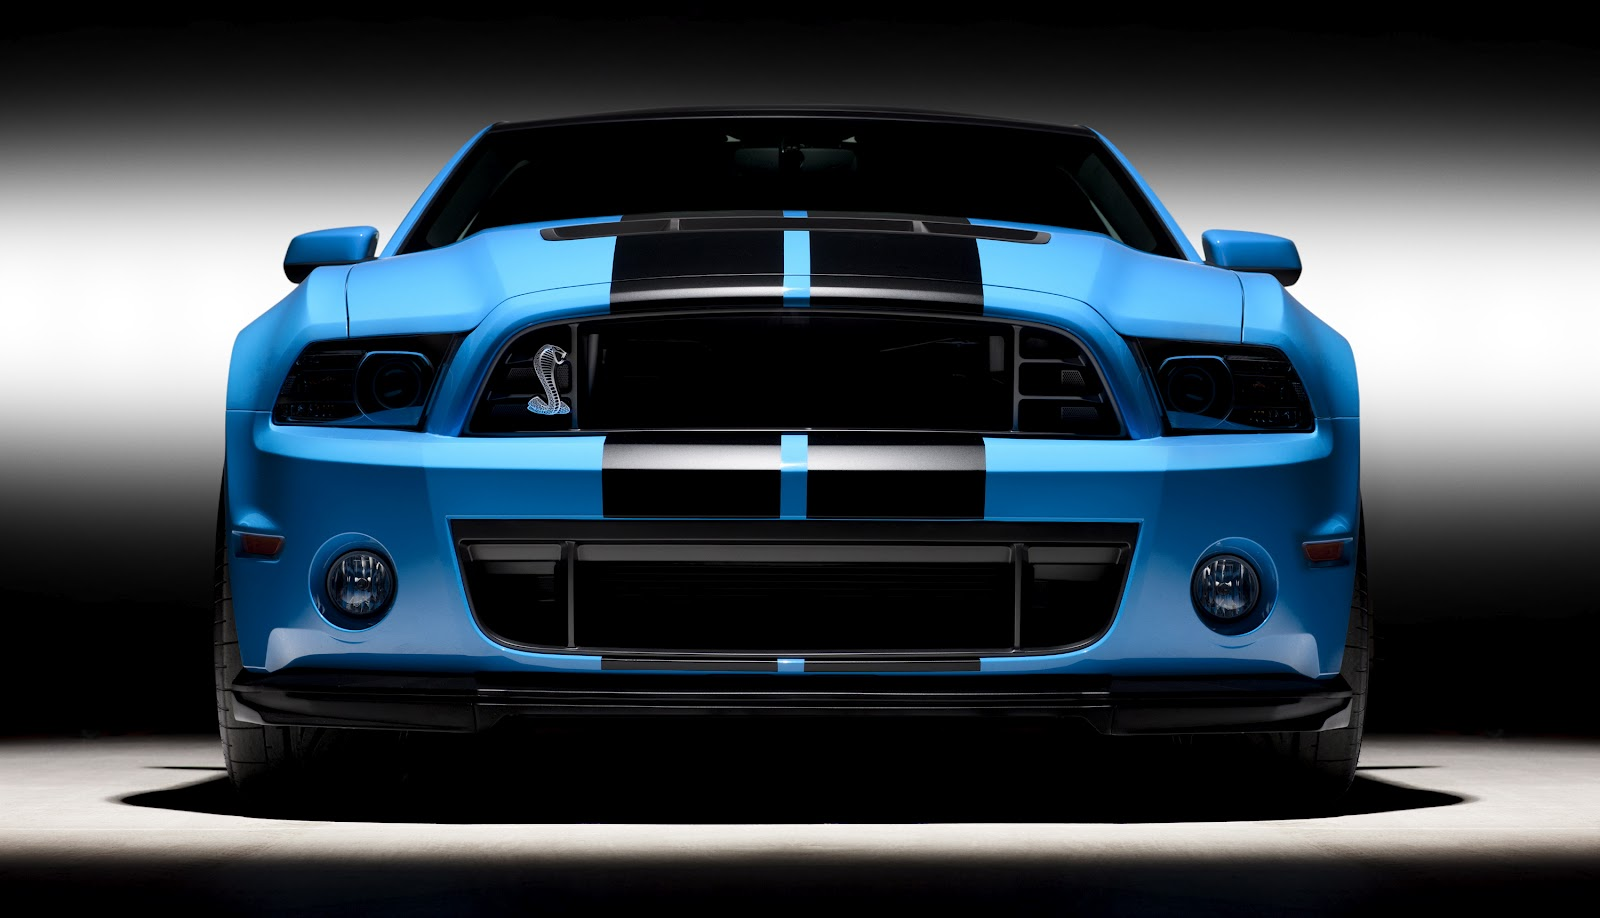 uautoknownet 2013 Mustang Shelby GT500 V8 to produce 662 hp